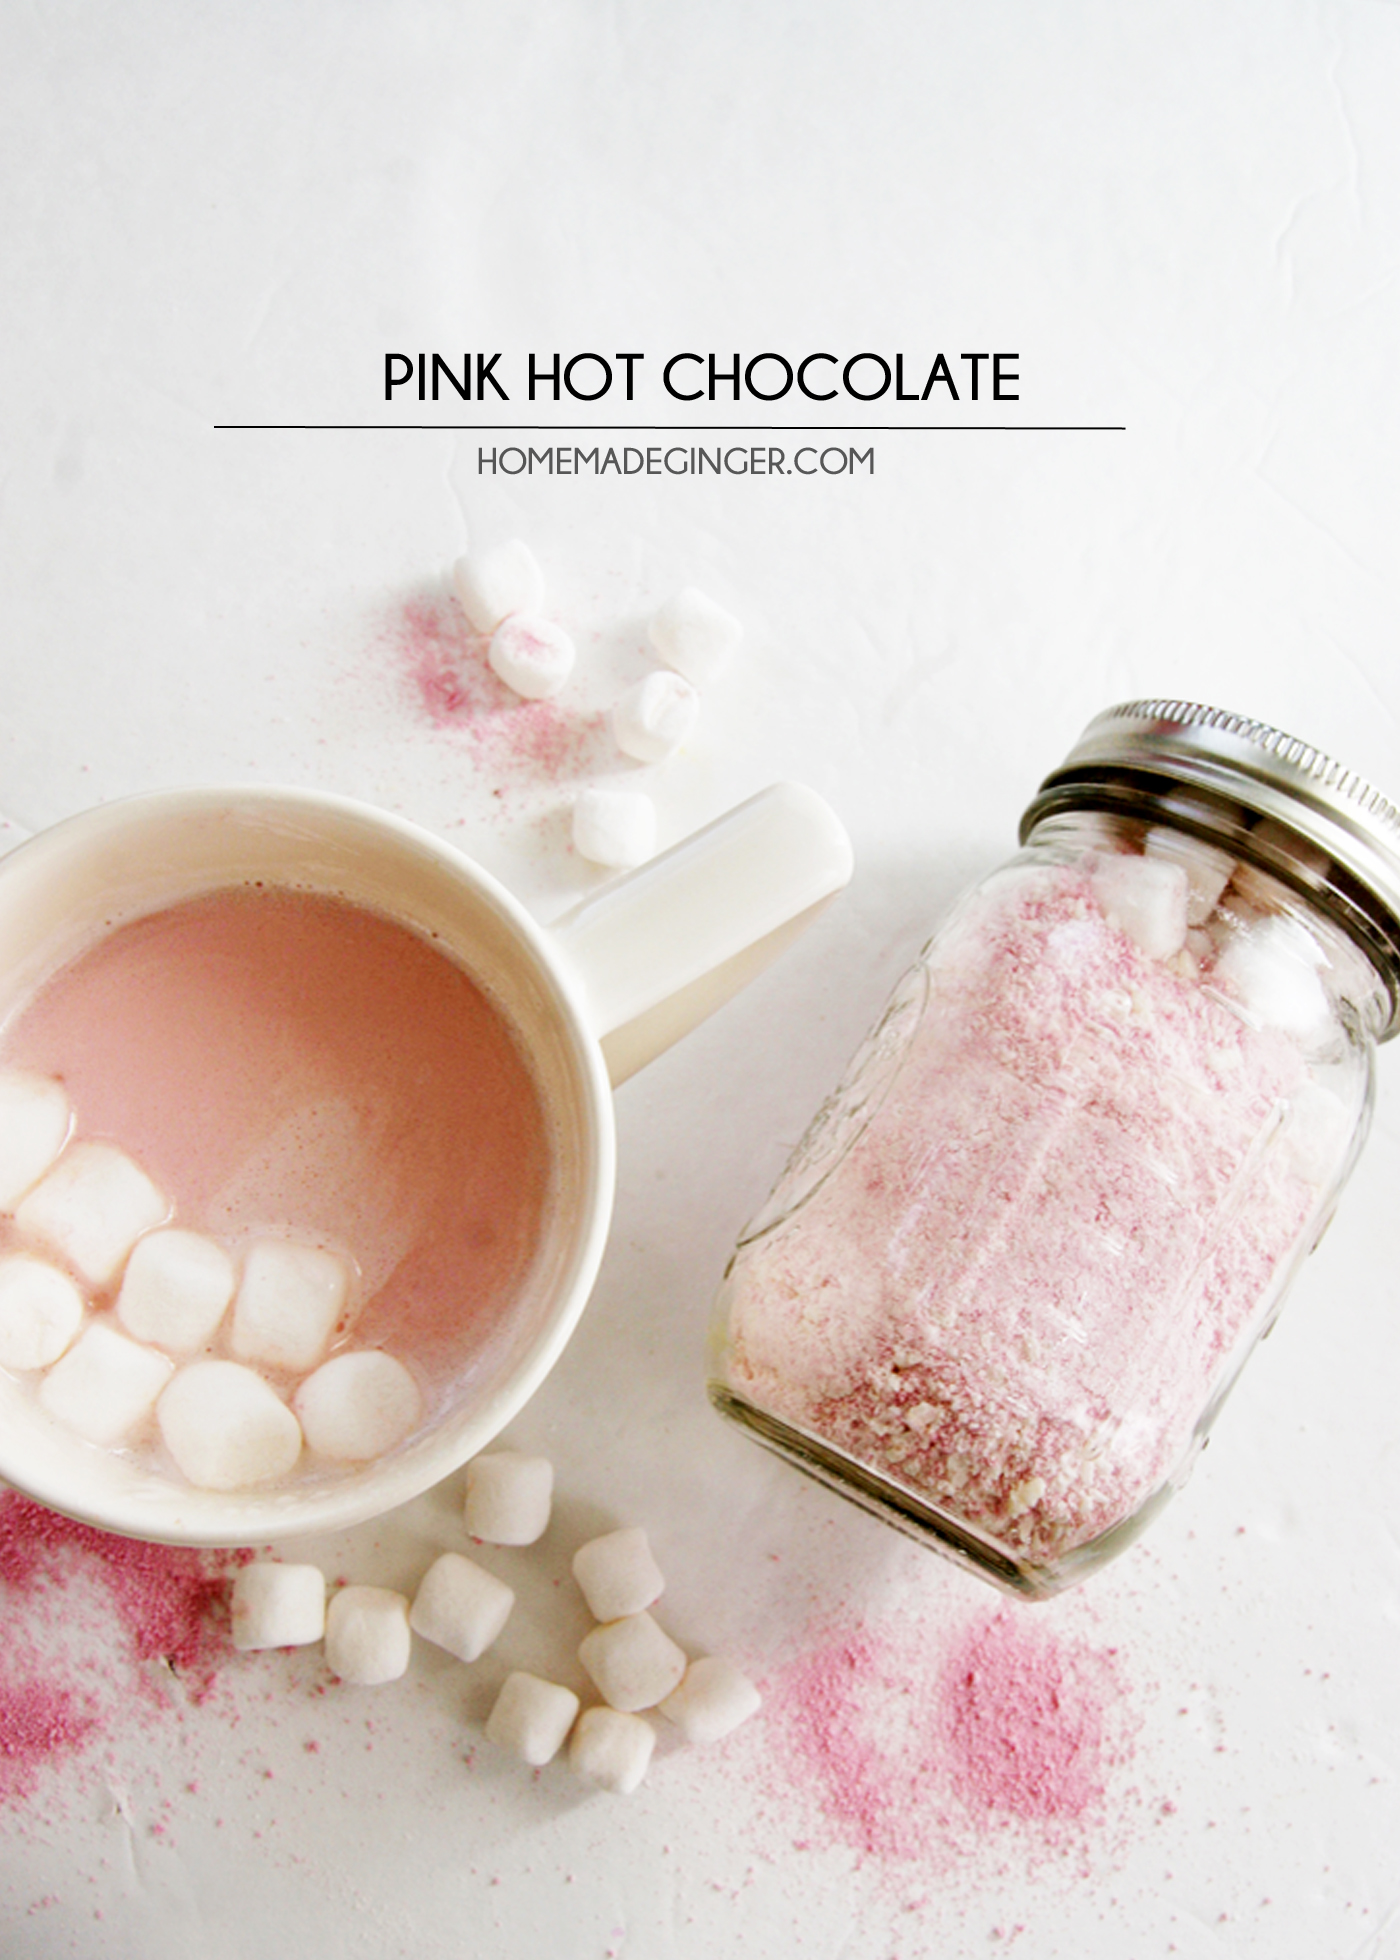 Delicious homemade pink hot chocolate